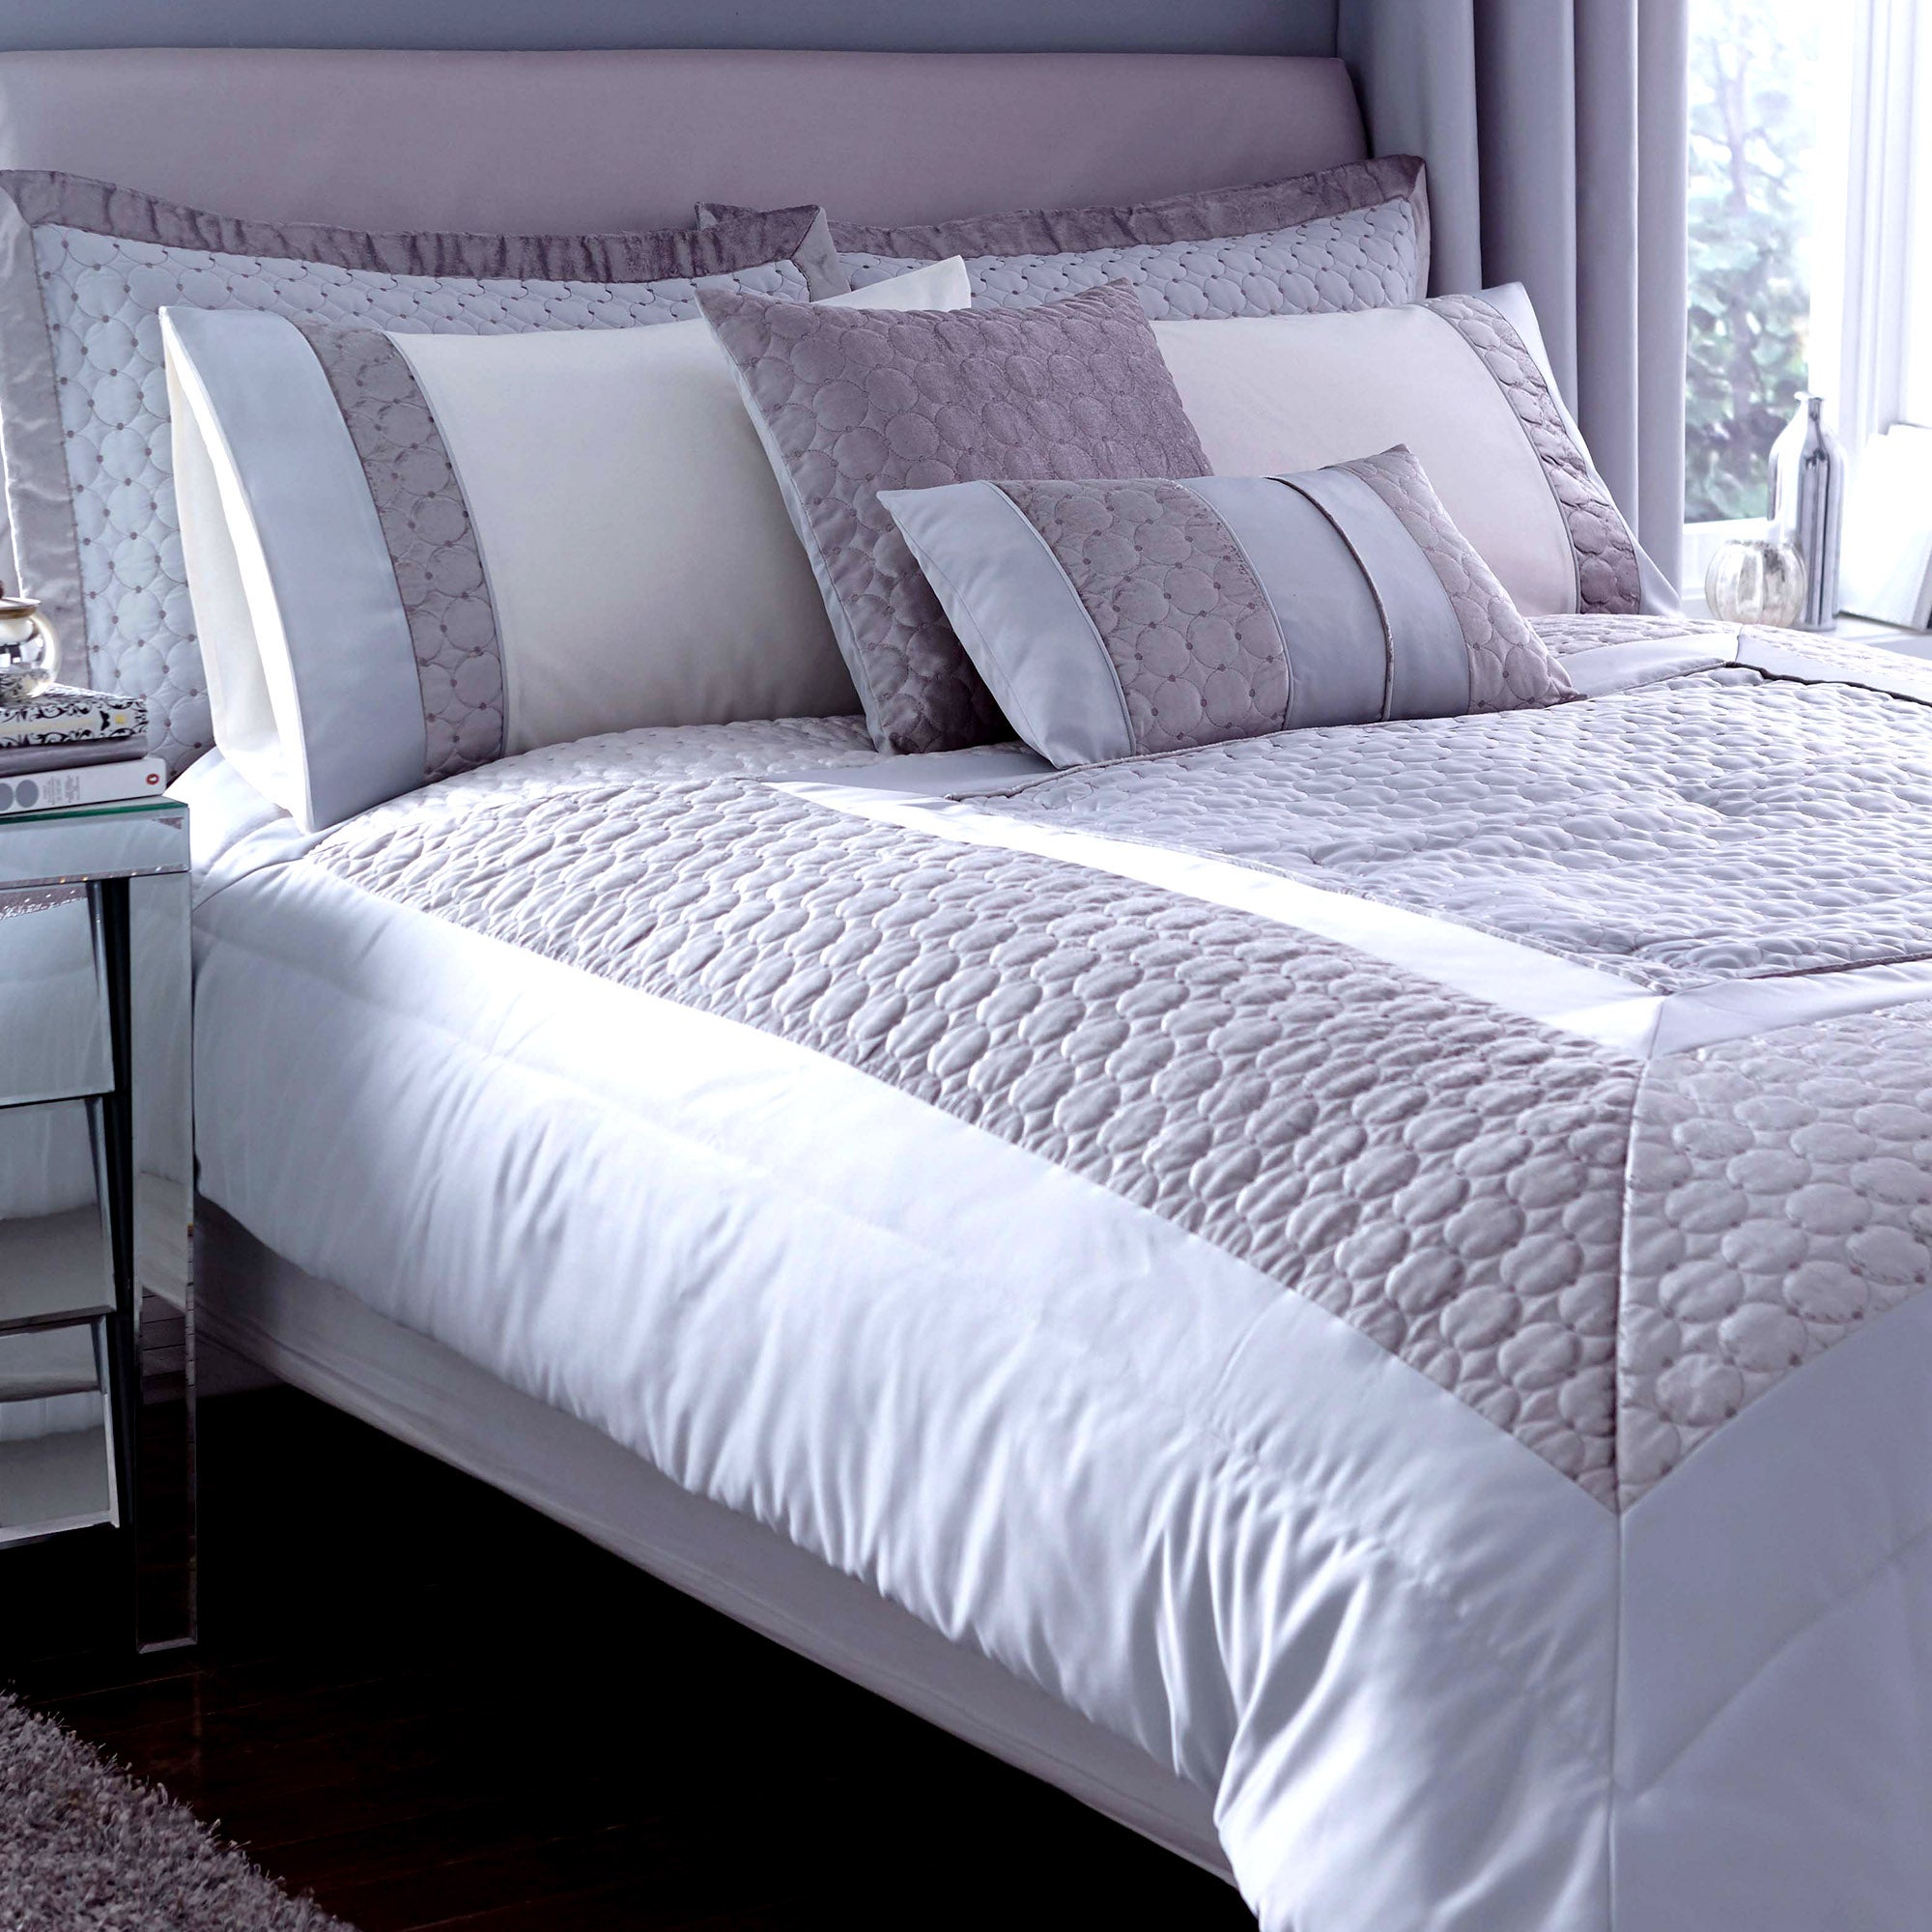 Bed set king koil bedding sets very cheap bedspreads and for Very cheap bedroom sets